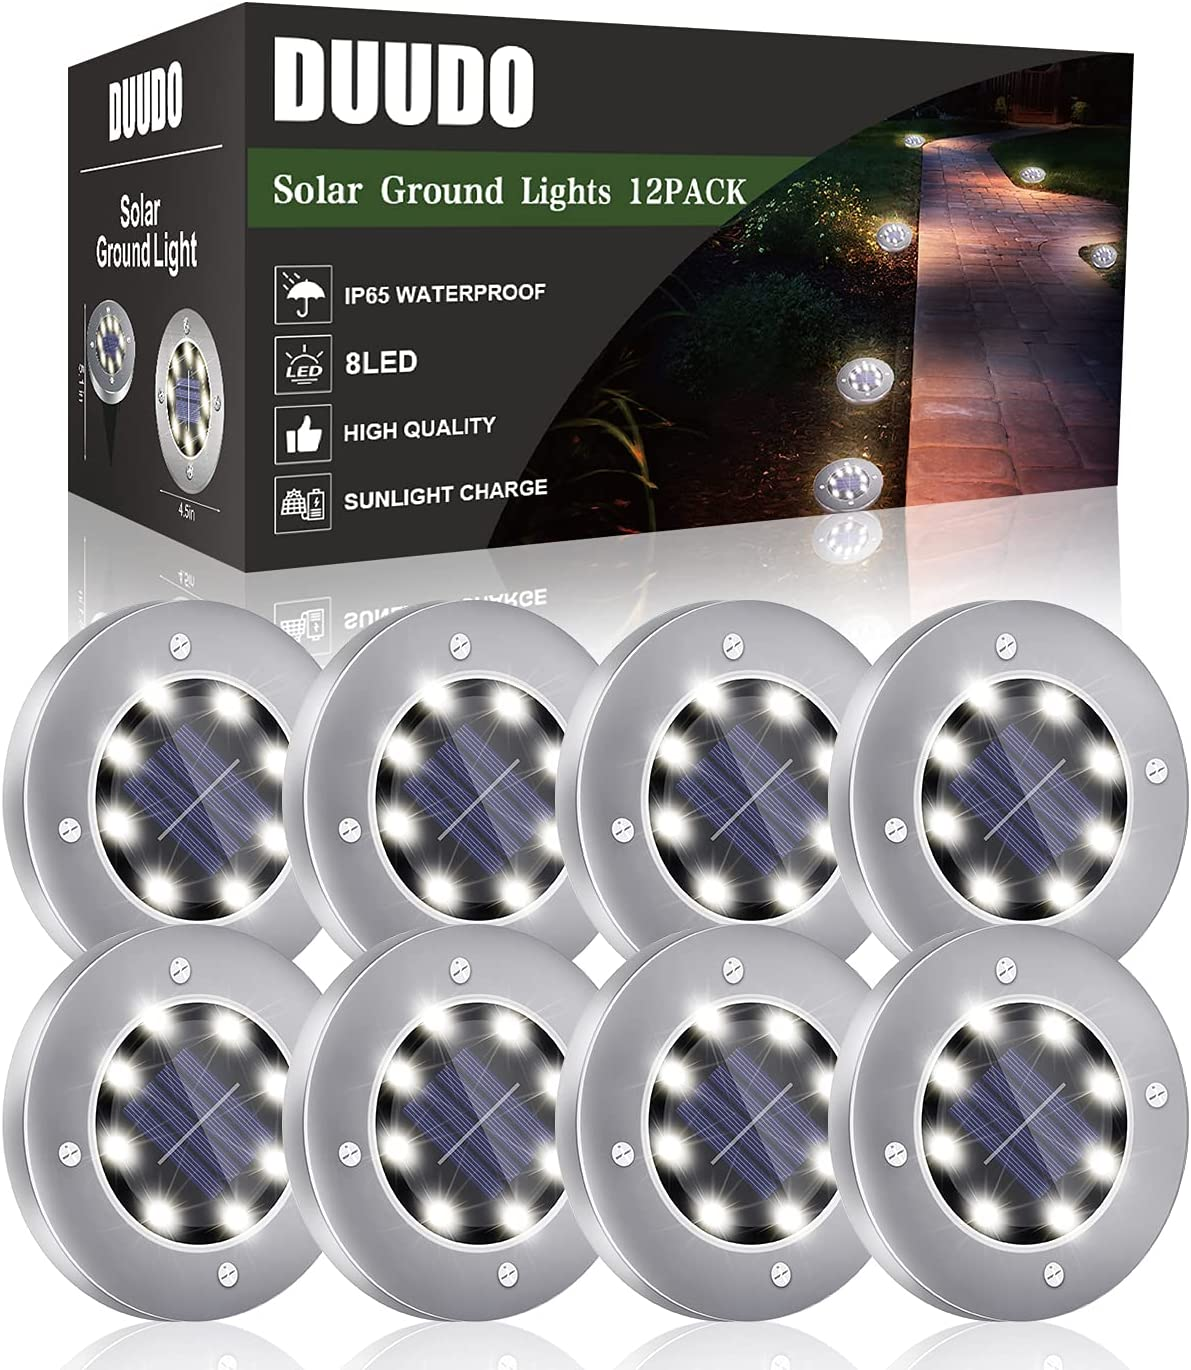 Duudo 8-LED 8-Pack Garden Pathway Solar Ground Light $16.99 Coupon